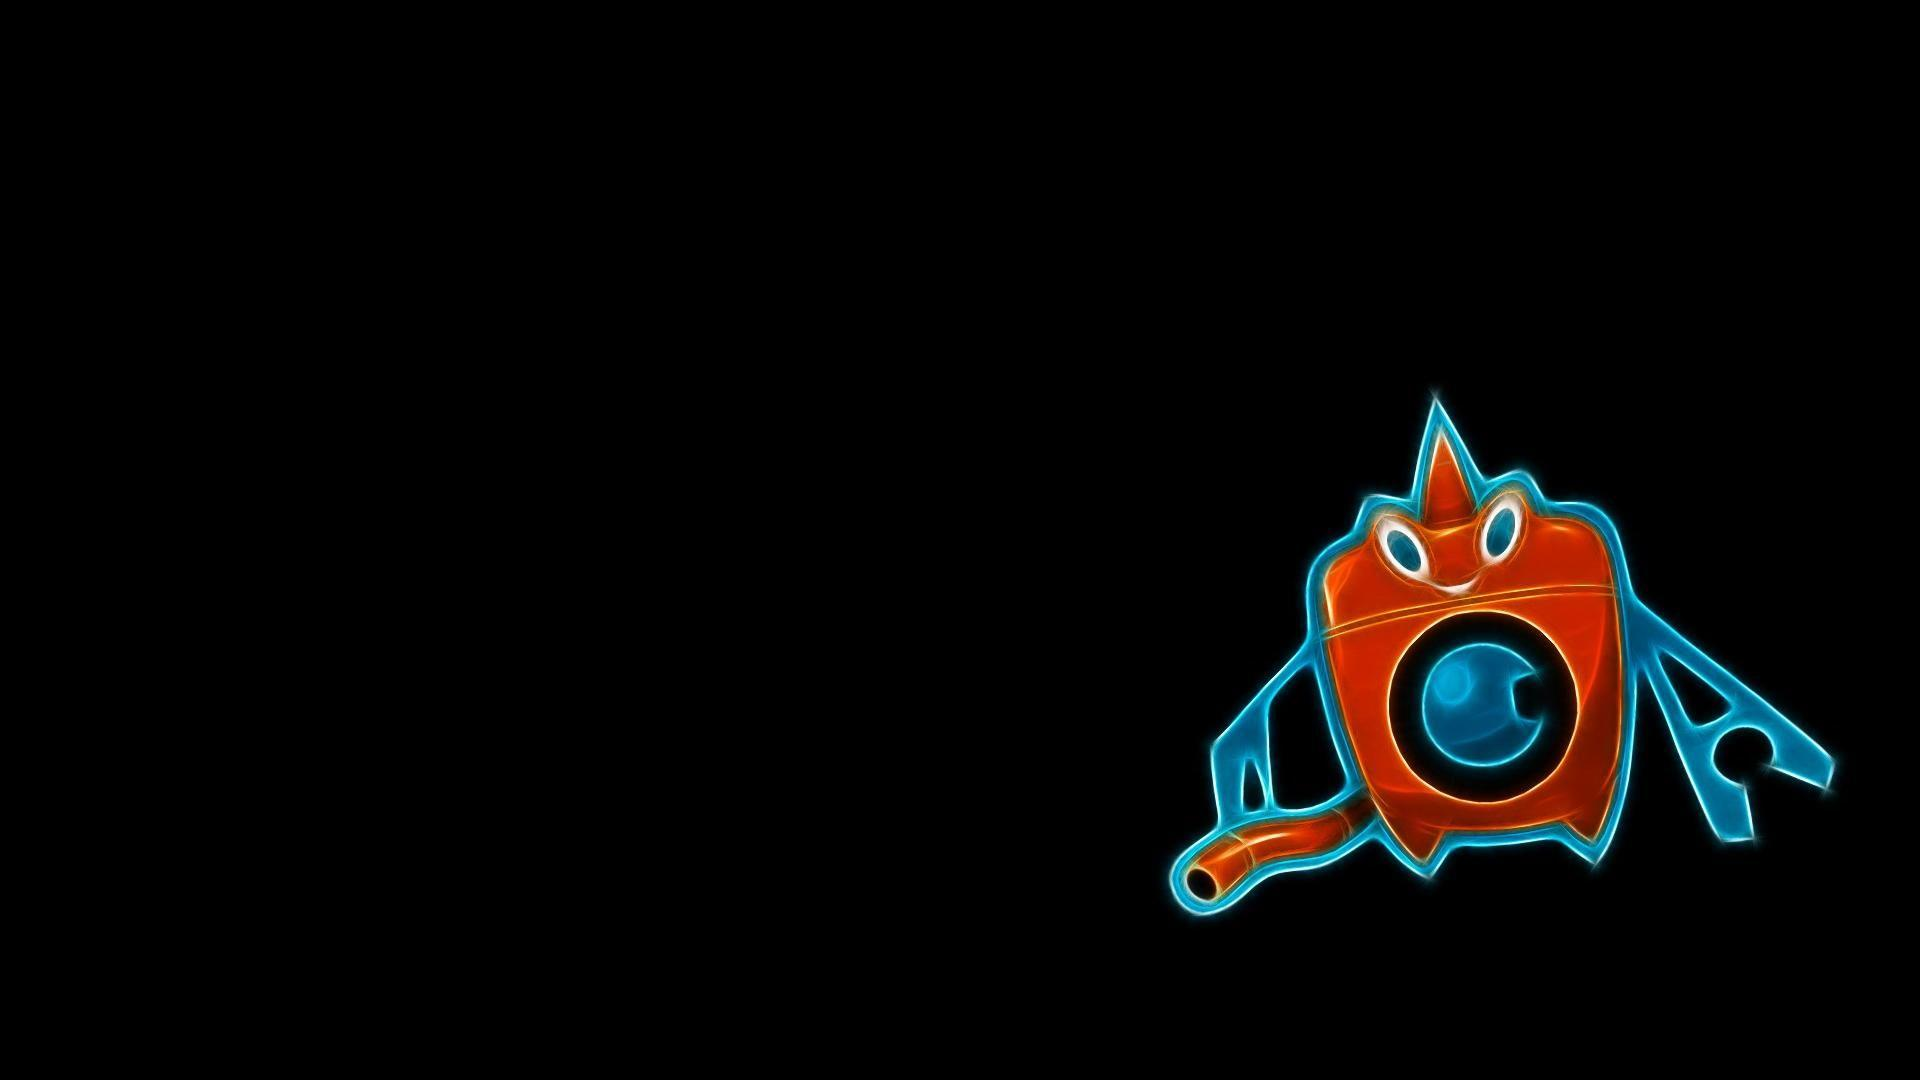 Pokemon rotom wash black backgrounds wallpapers